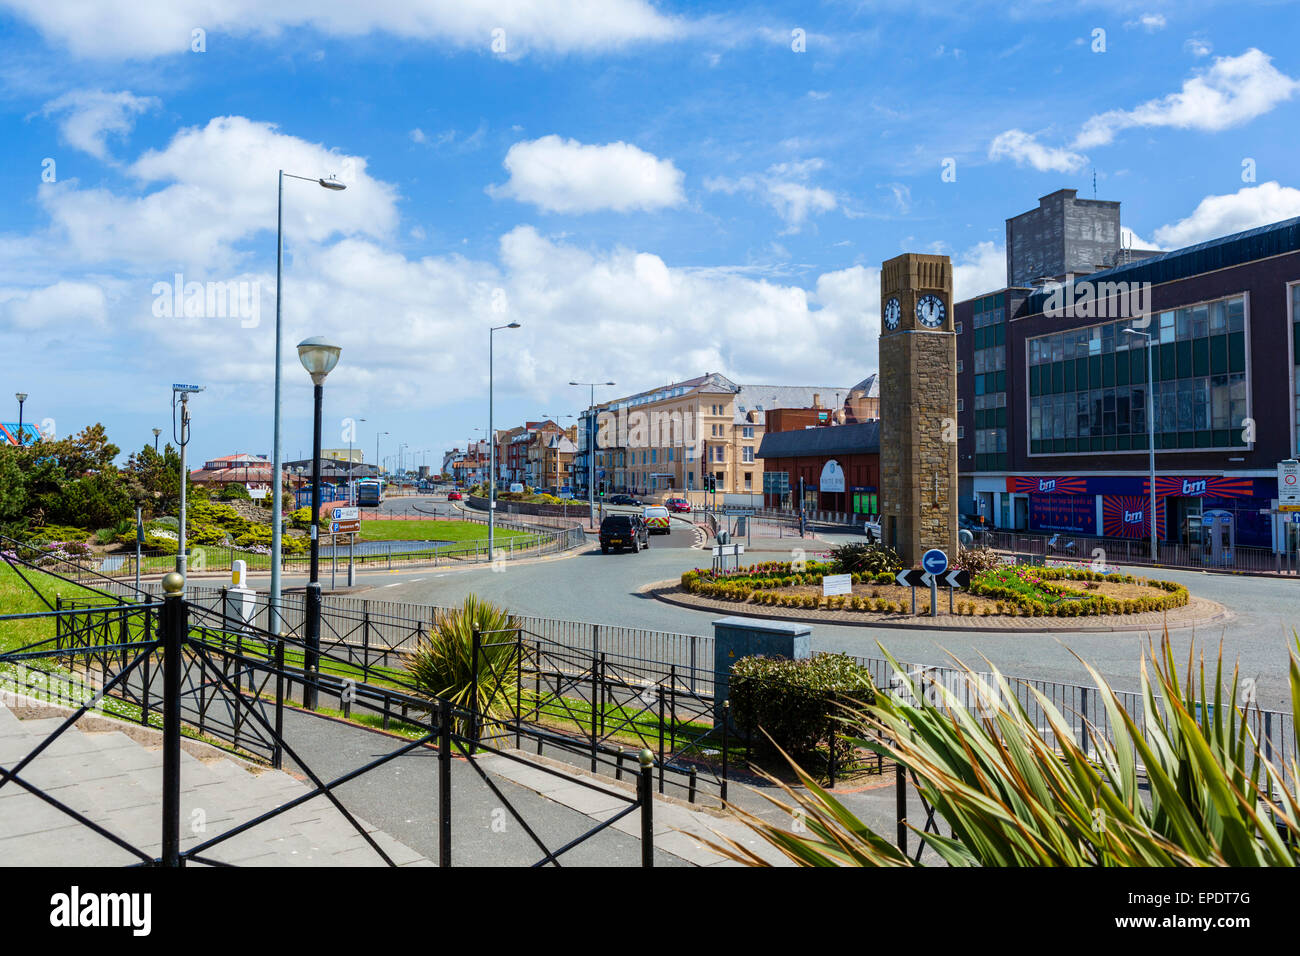 View down East Parade in the town centre, Rhyl, Denbighshire, Wales, UK - Stock Image